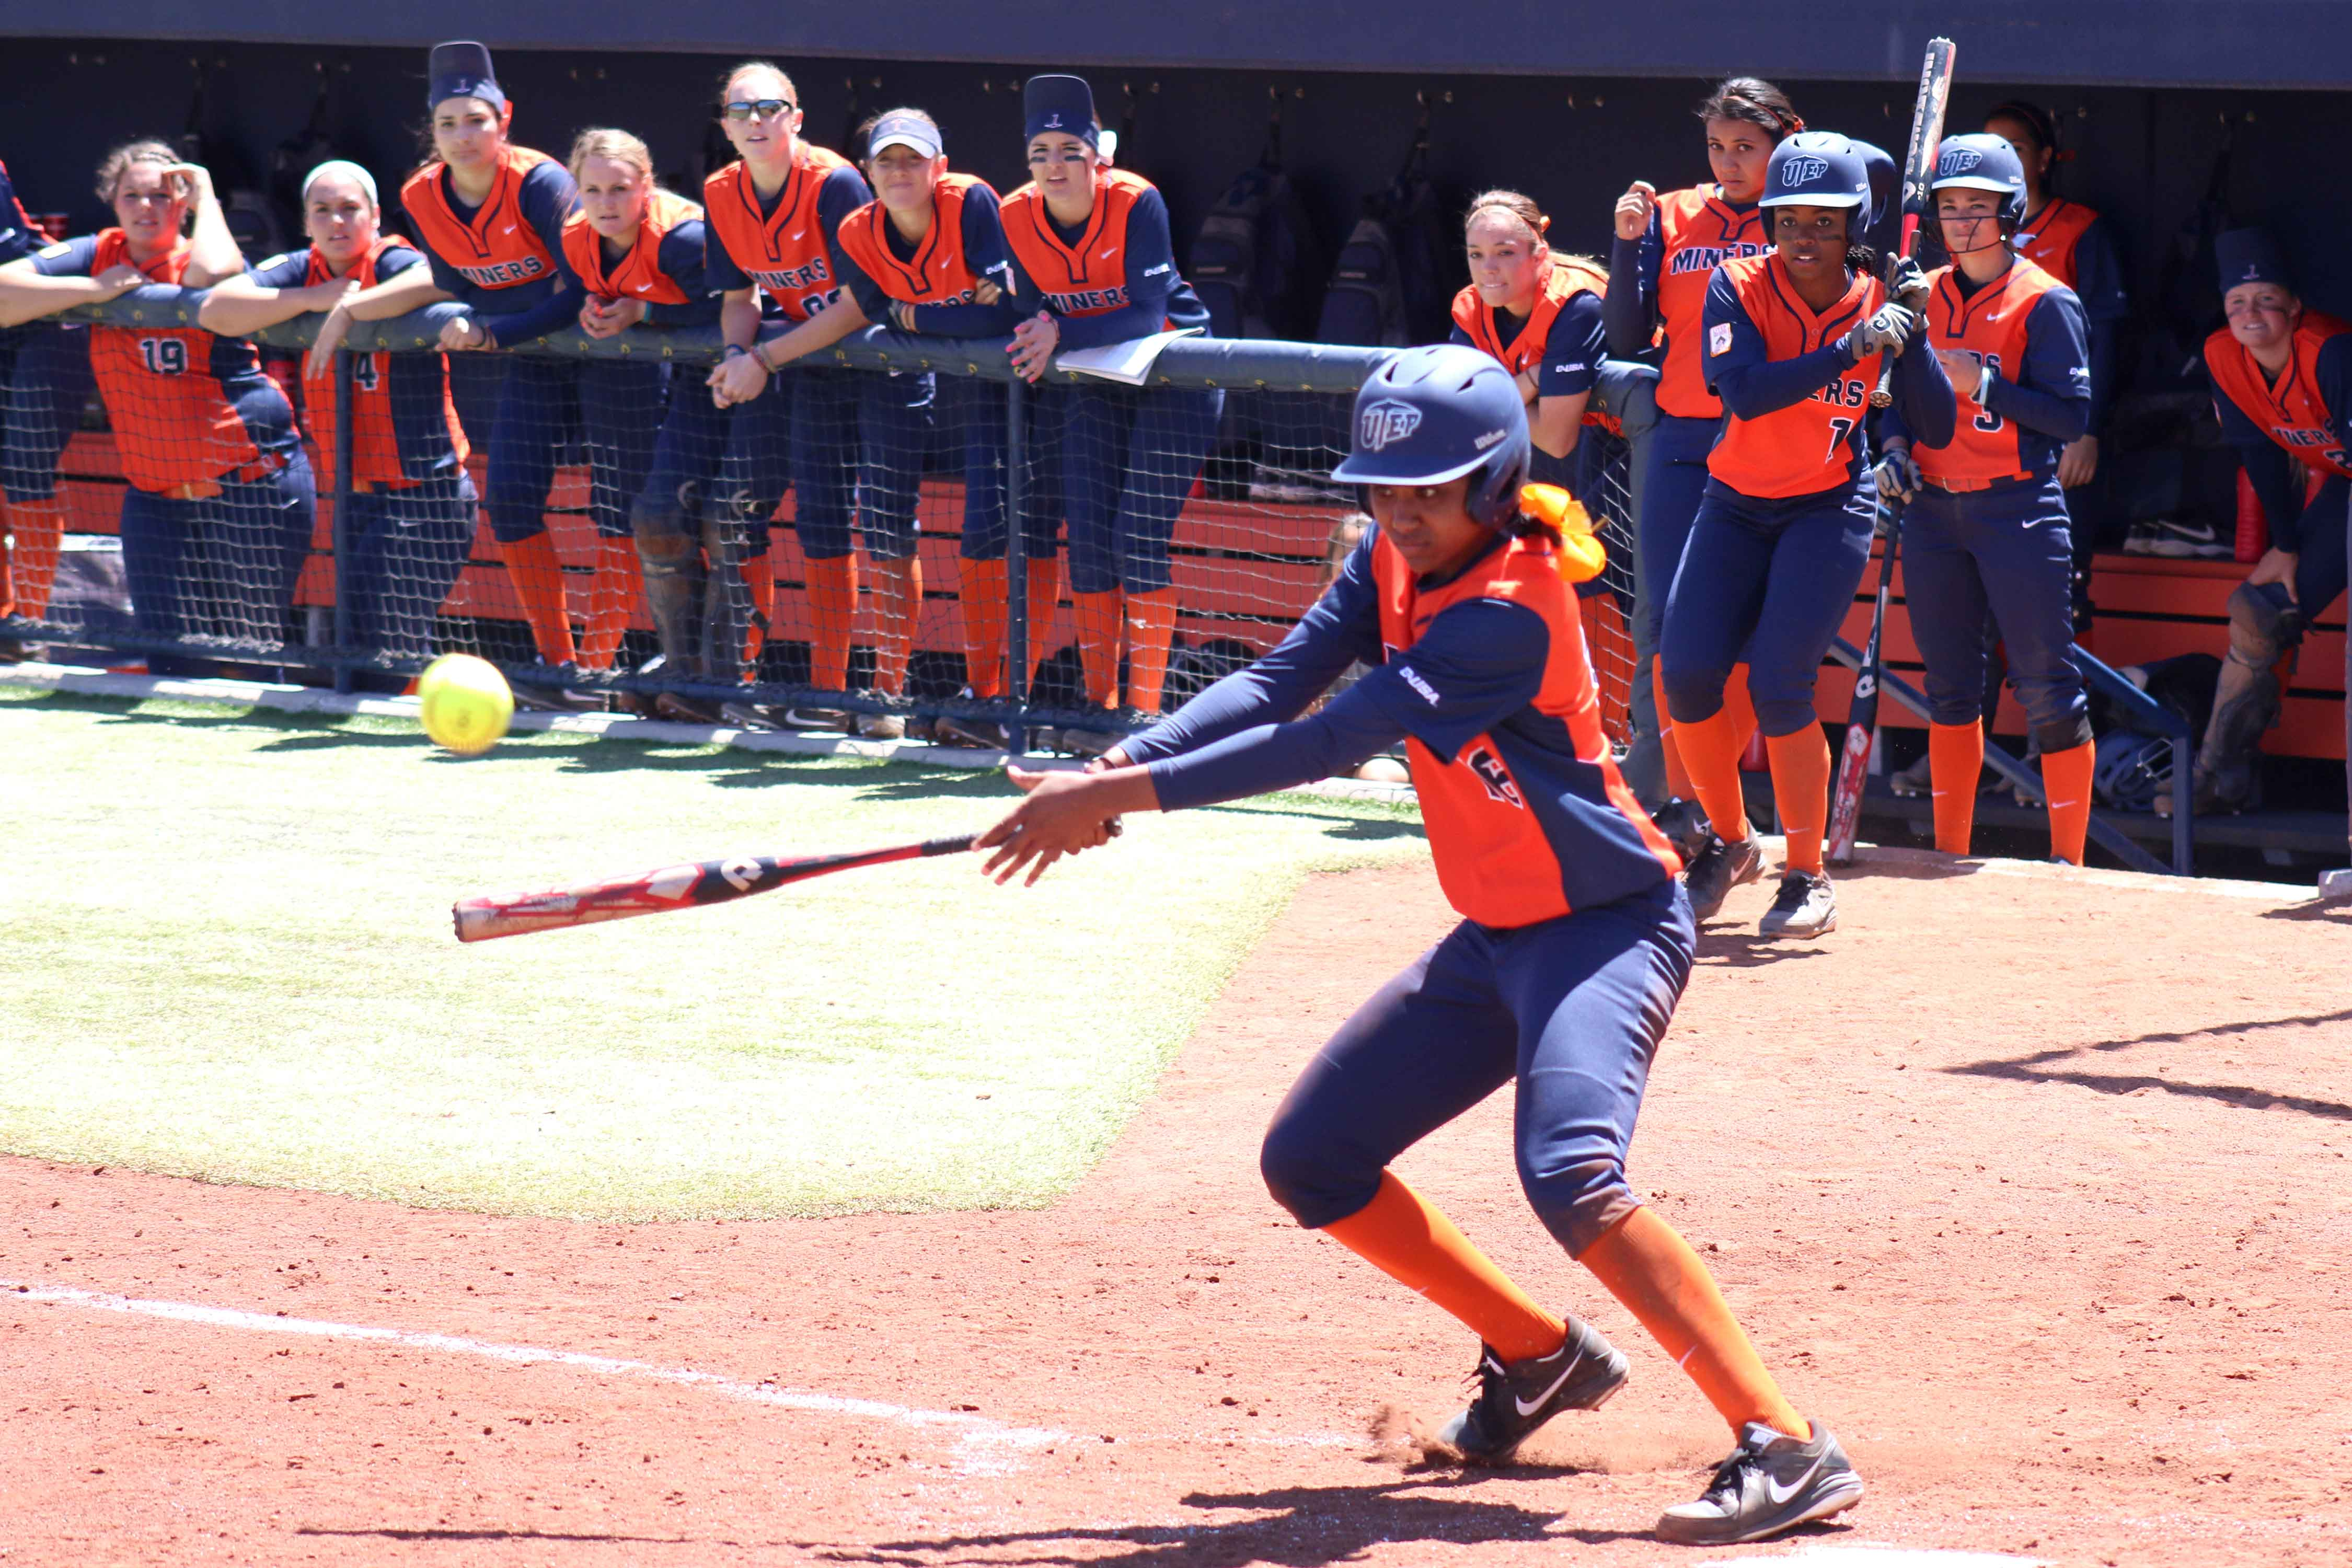 The UTEP softball team will head to Hawaii for the Bank of Hawaii Invitational Tournament next weekend.